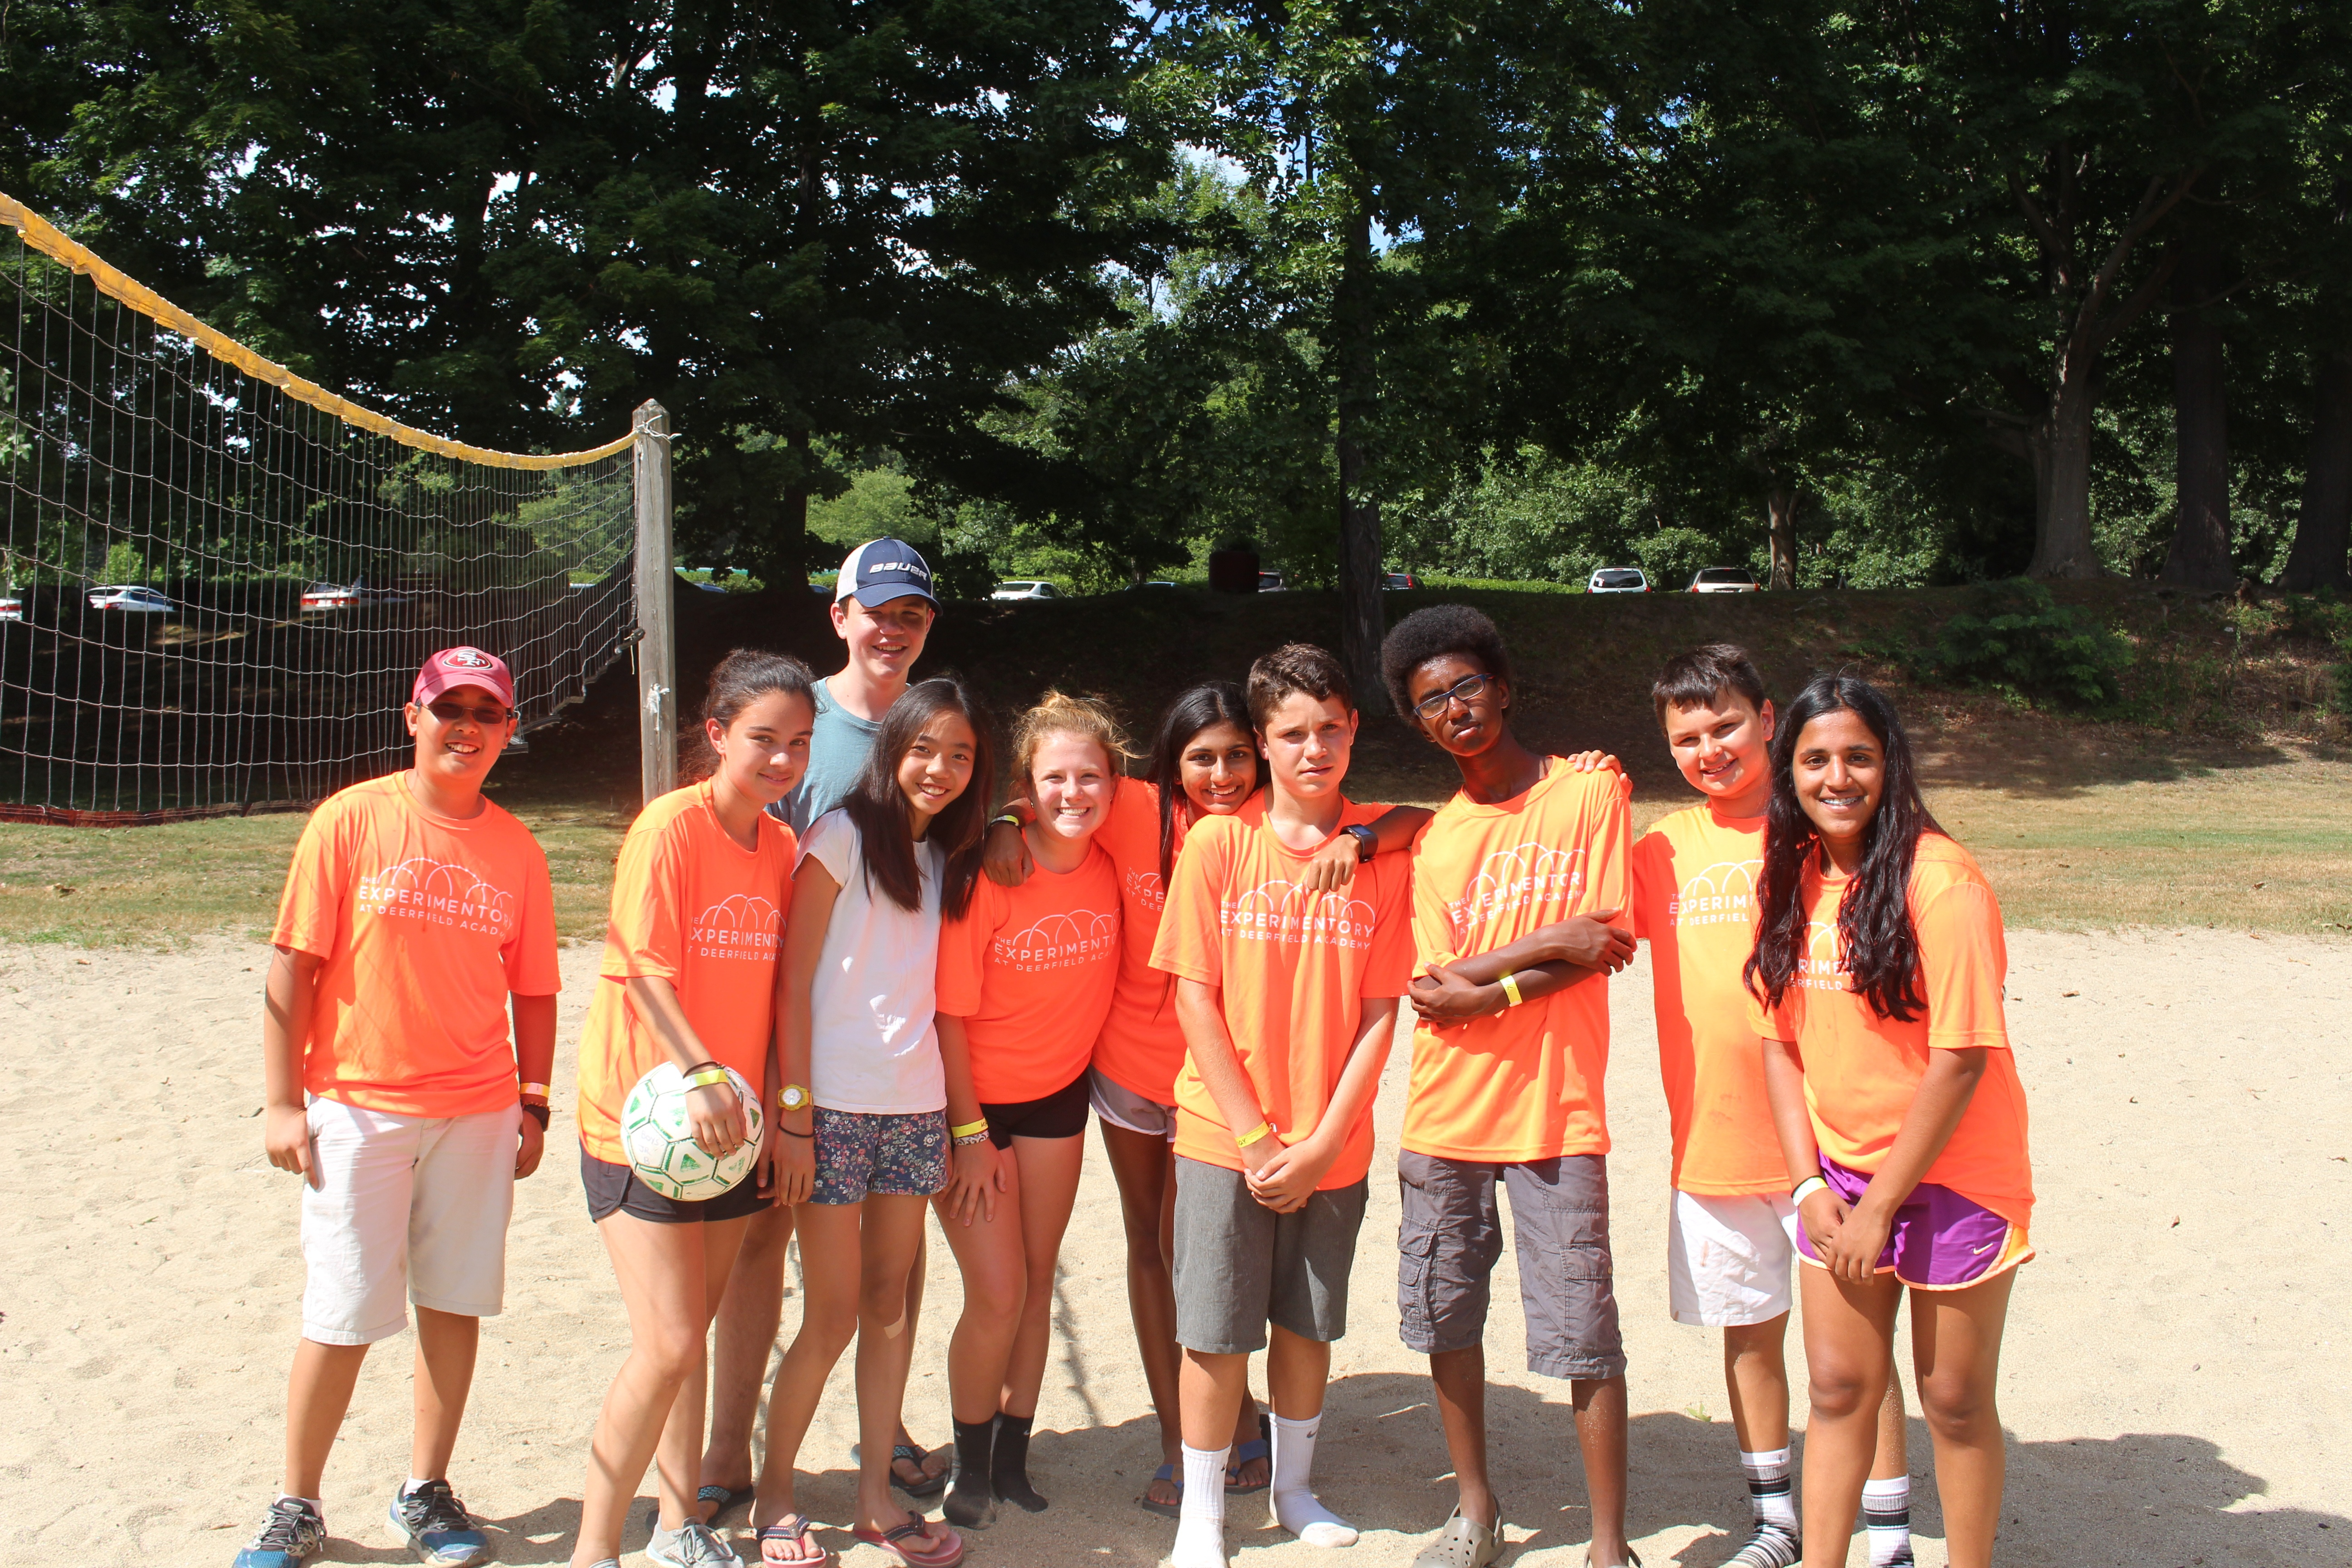 Experimentory students stand out - in this case because of their bright shirts on the volleyball court.